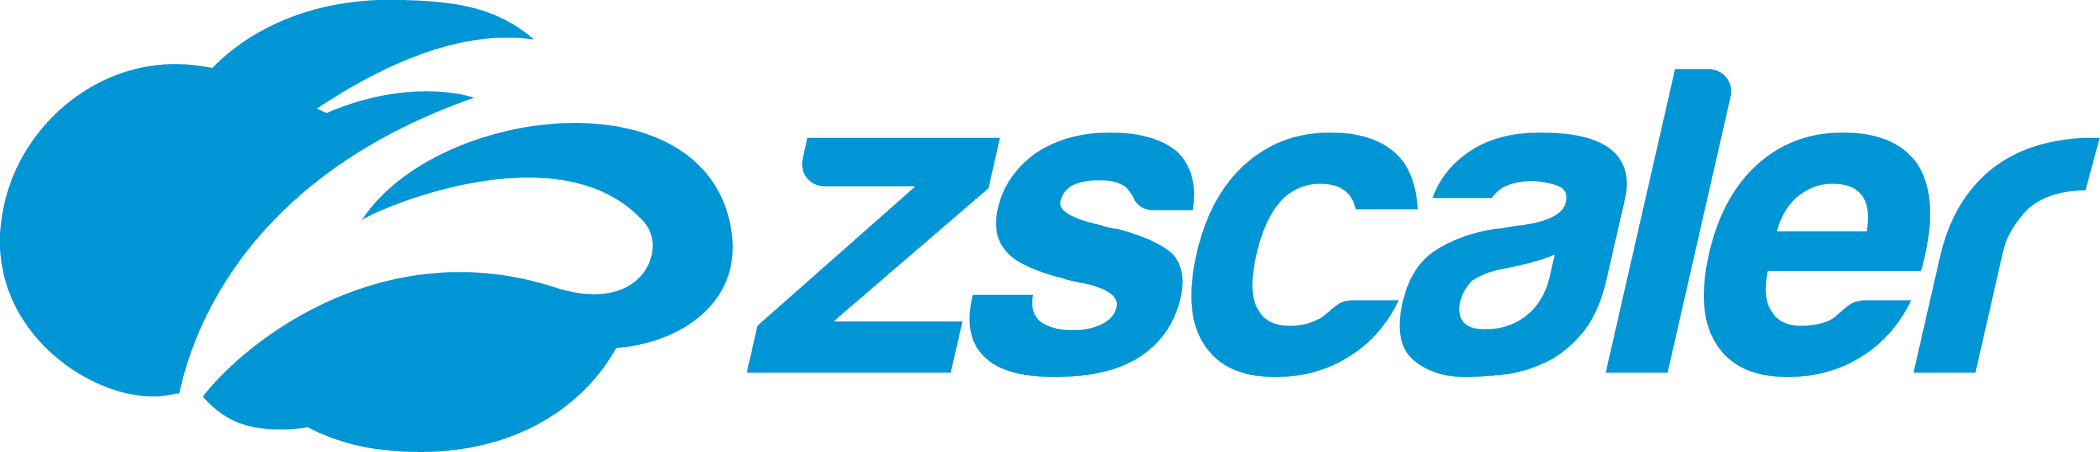 Zscaler Logo png